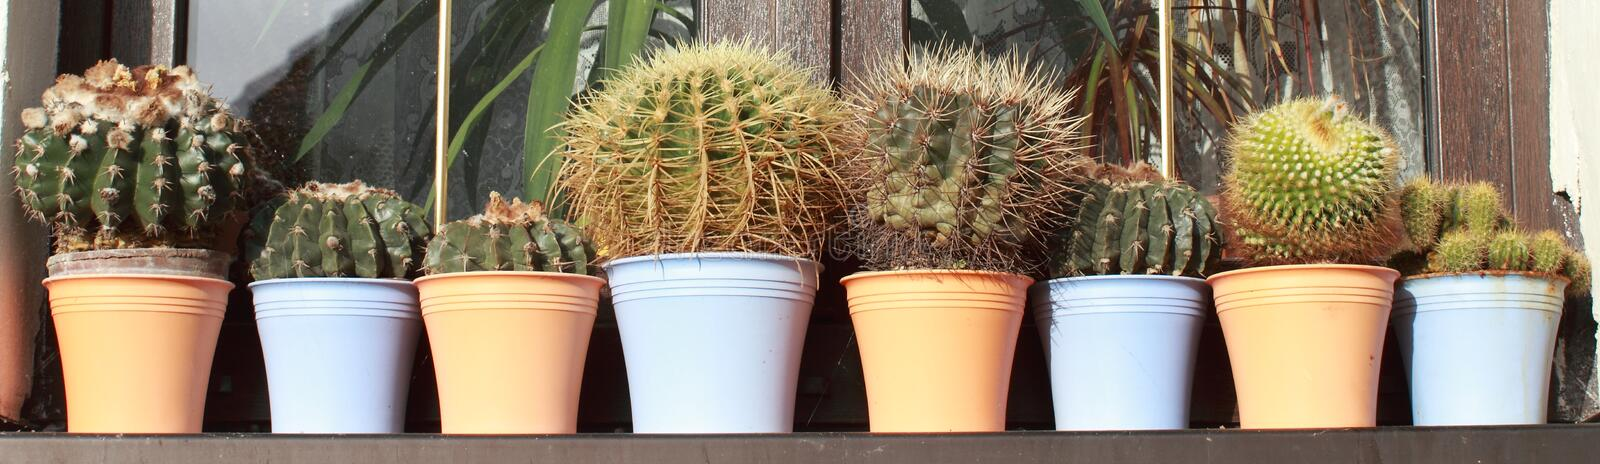 Cactuses. Row of cactuses in front of the window royalty free stock images